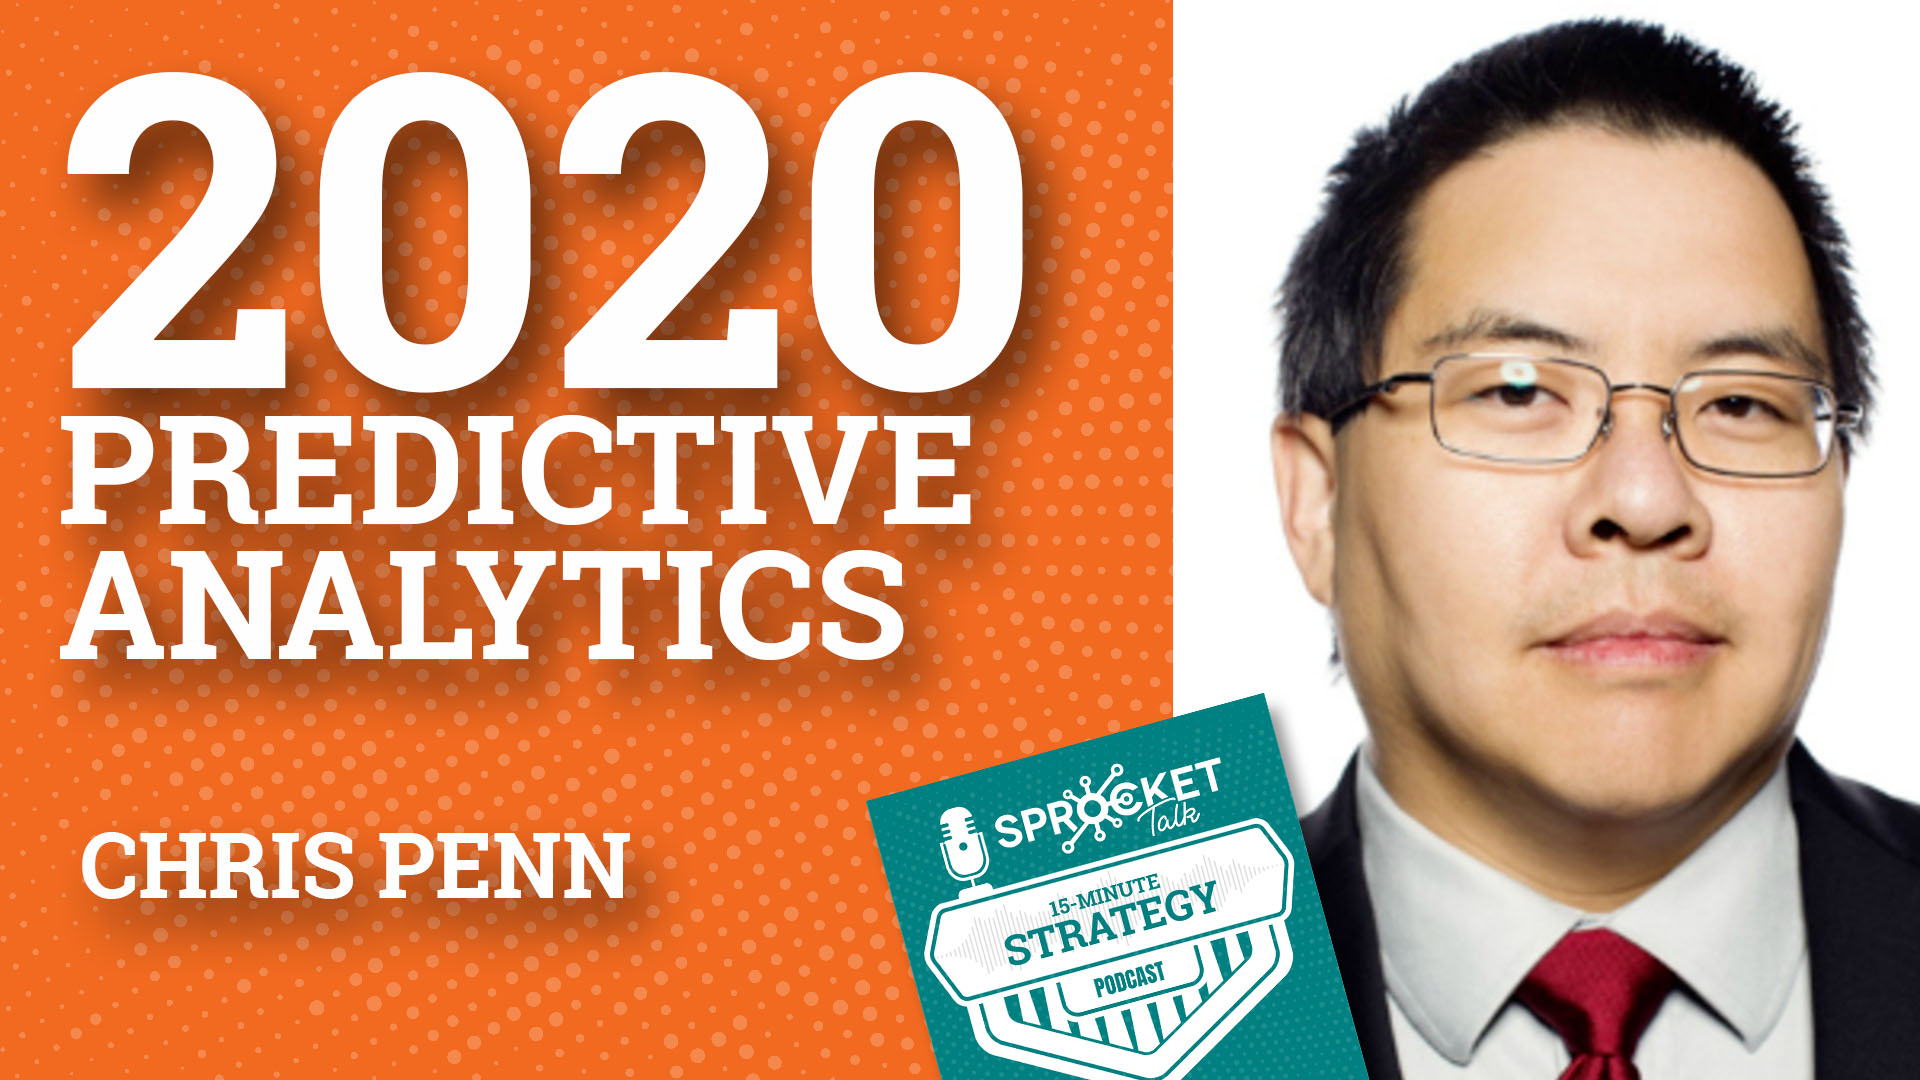 Christopher Penn on 2020 Predictive Analytics Strategy | 15-Minute Strategy Podcast